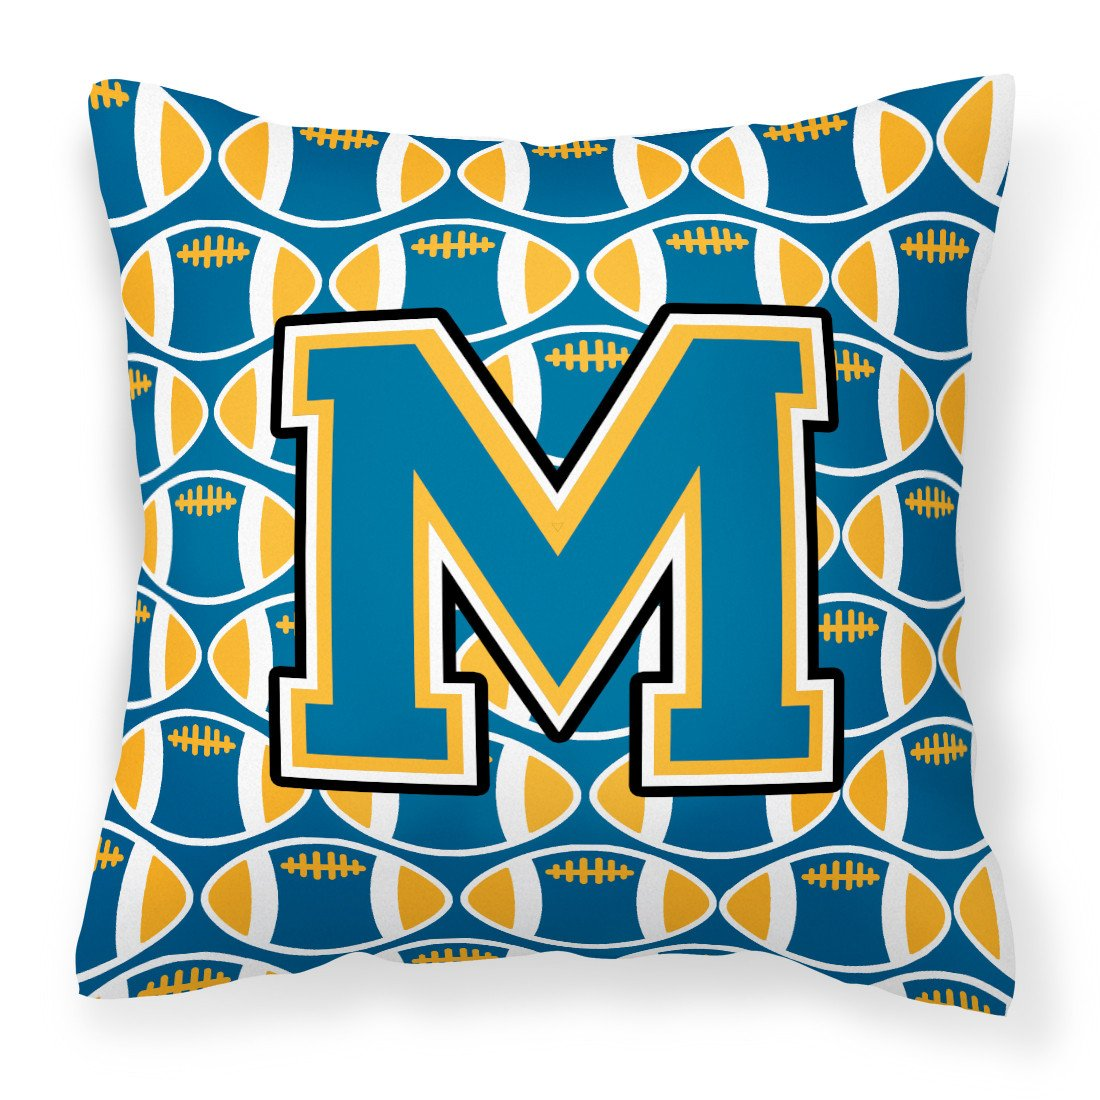 Letter M Football Blue and Gold Fabric Decorative Pillow CJ1077-MPW1414 by Caroline's Treasures